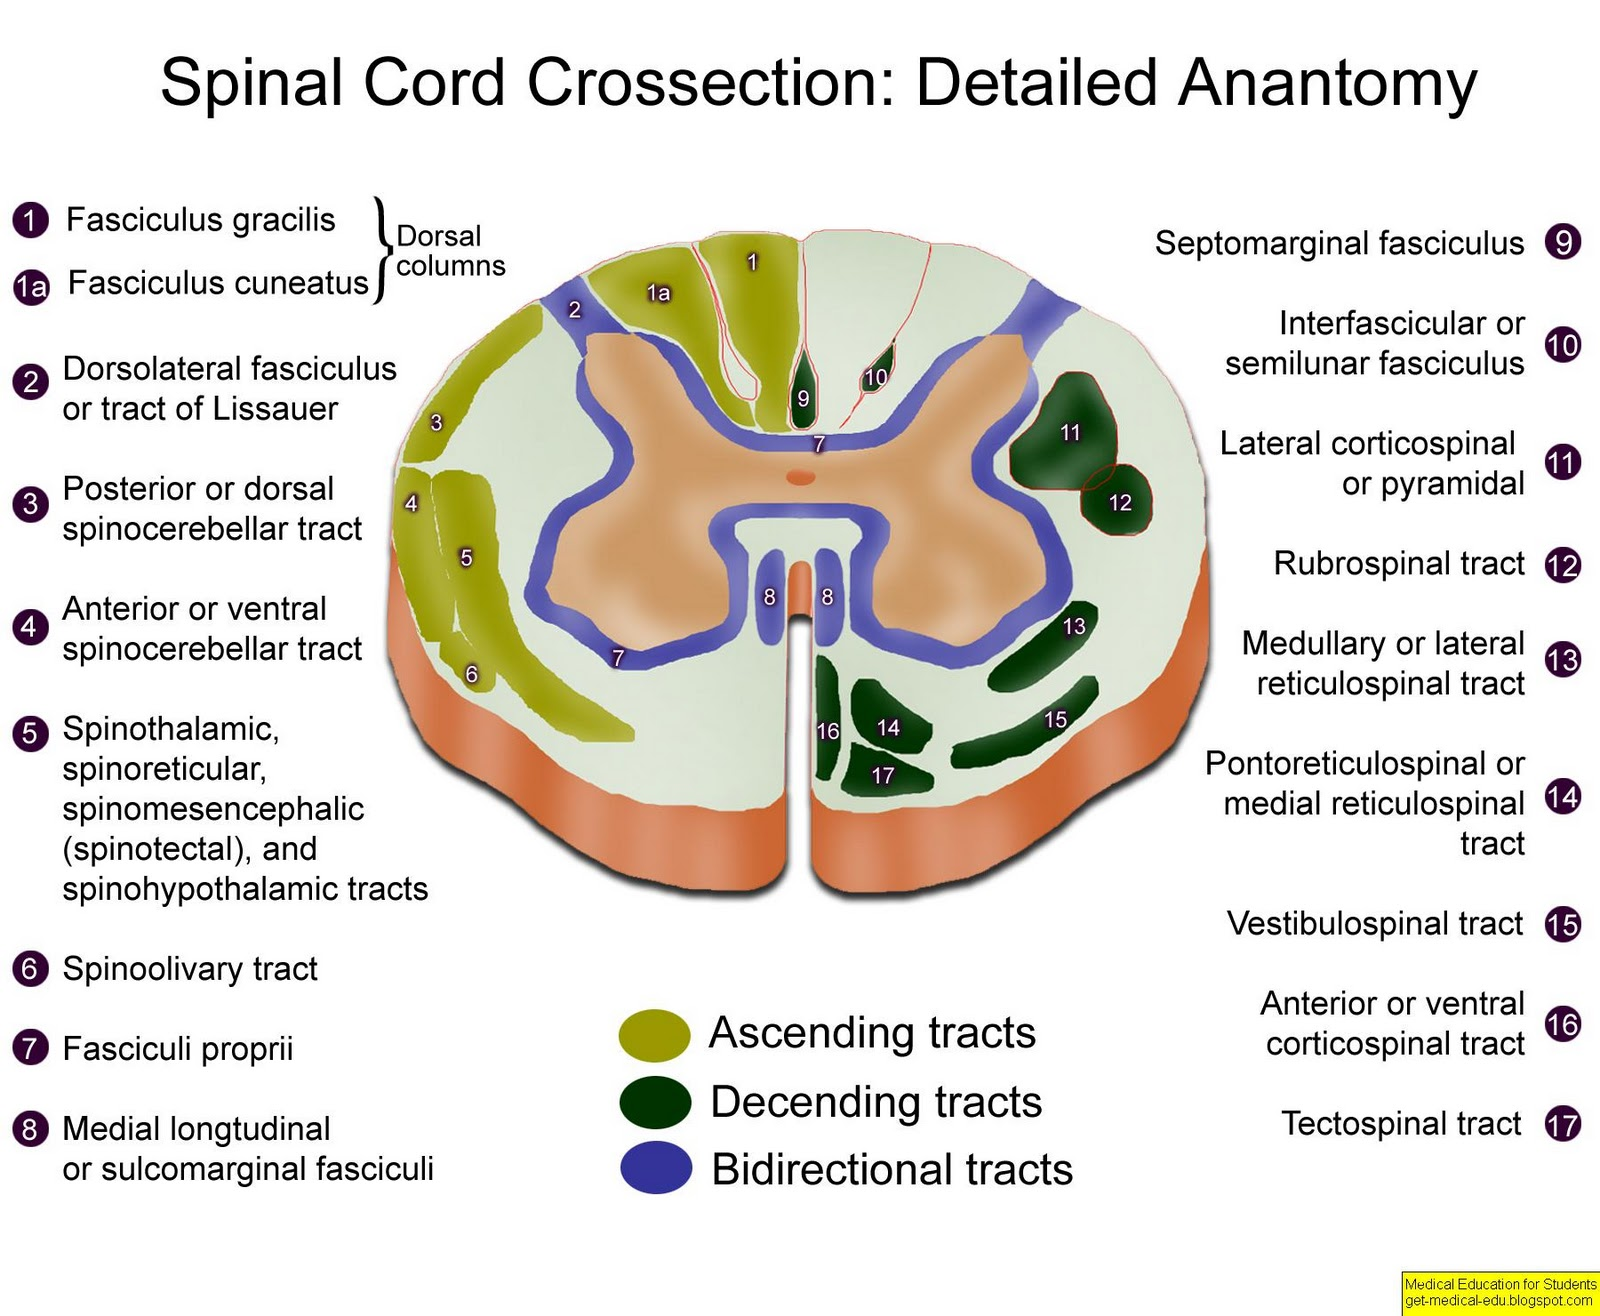 Spinal cord anatomy tracts